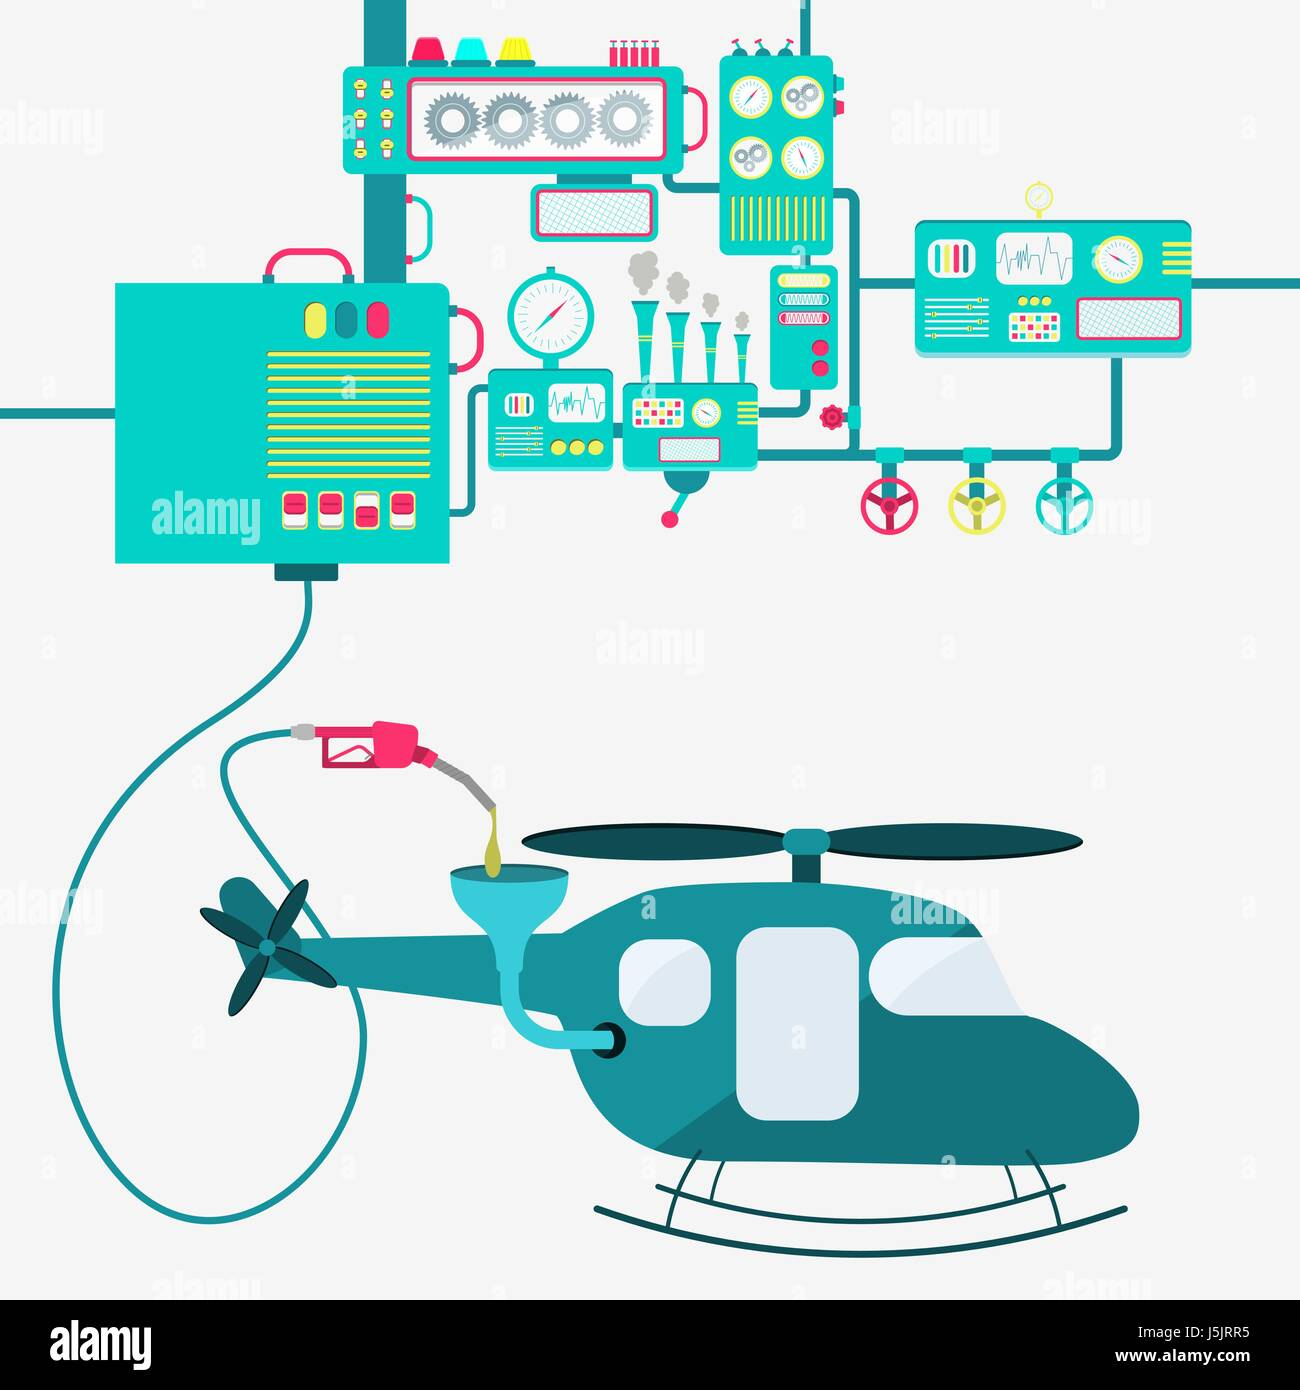 Machinery of factory refining gasoline and refueling a helicopter. Copter being fueled by a gas pump. - Stock Vector